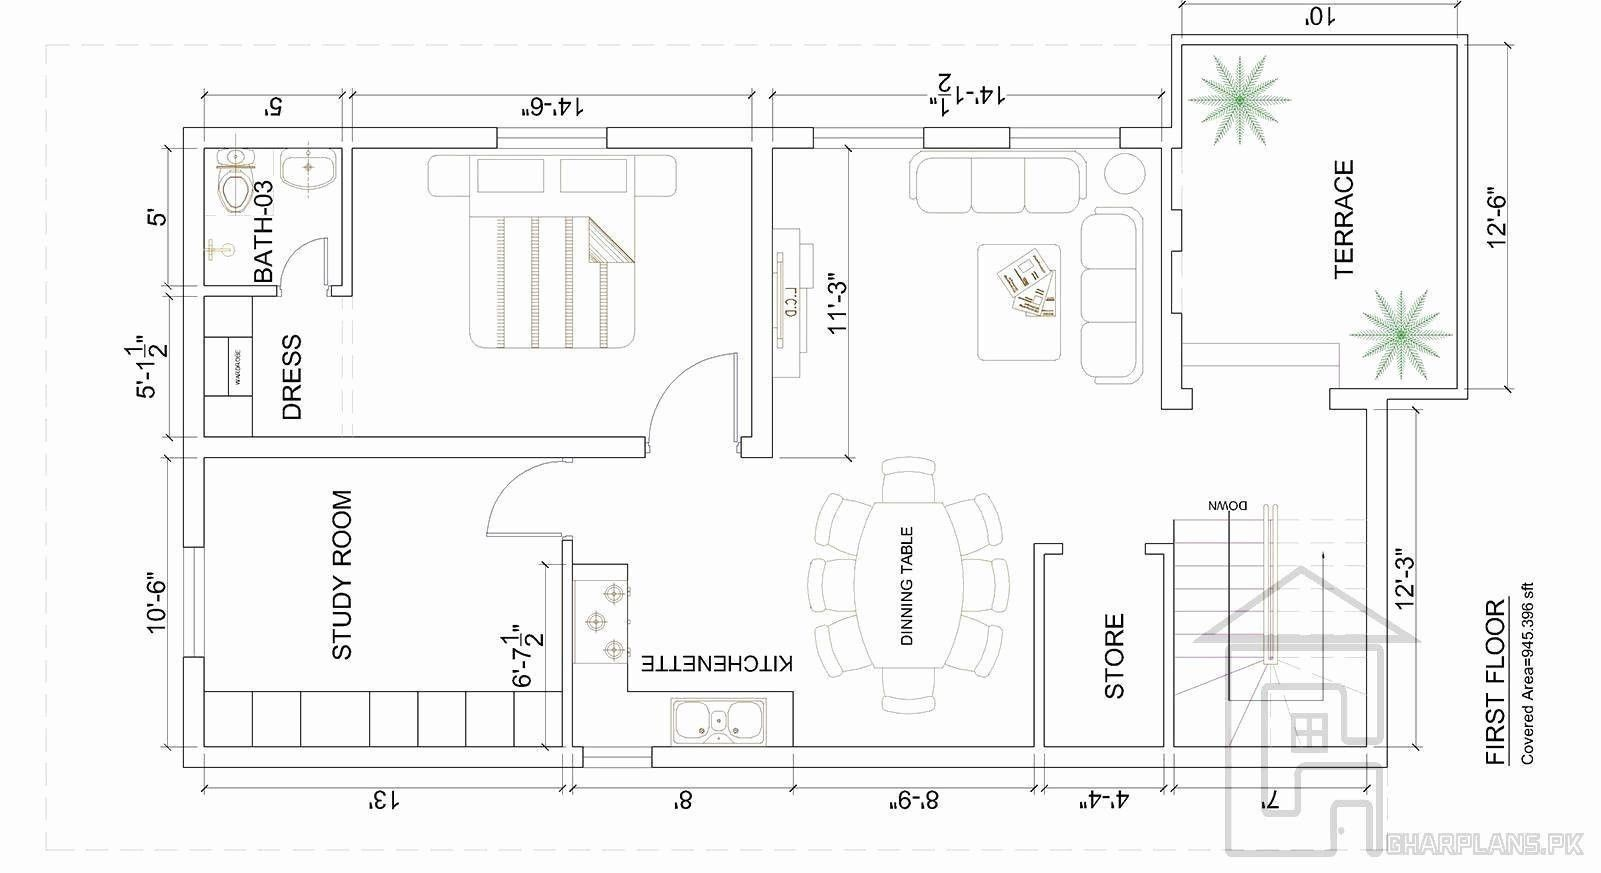 50 How To Draw House Plans Tq8b